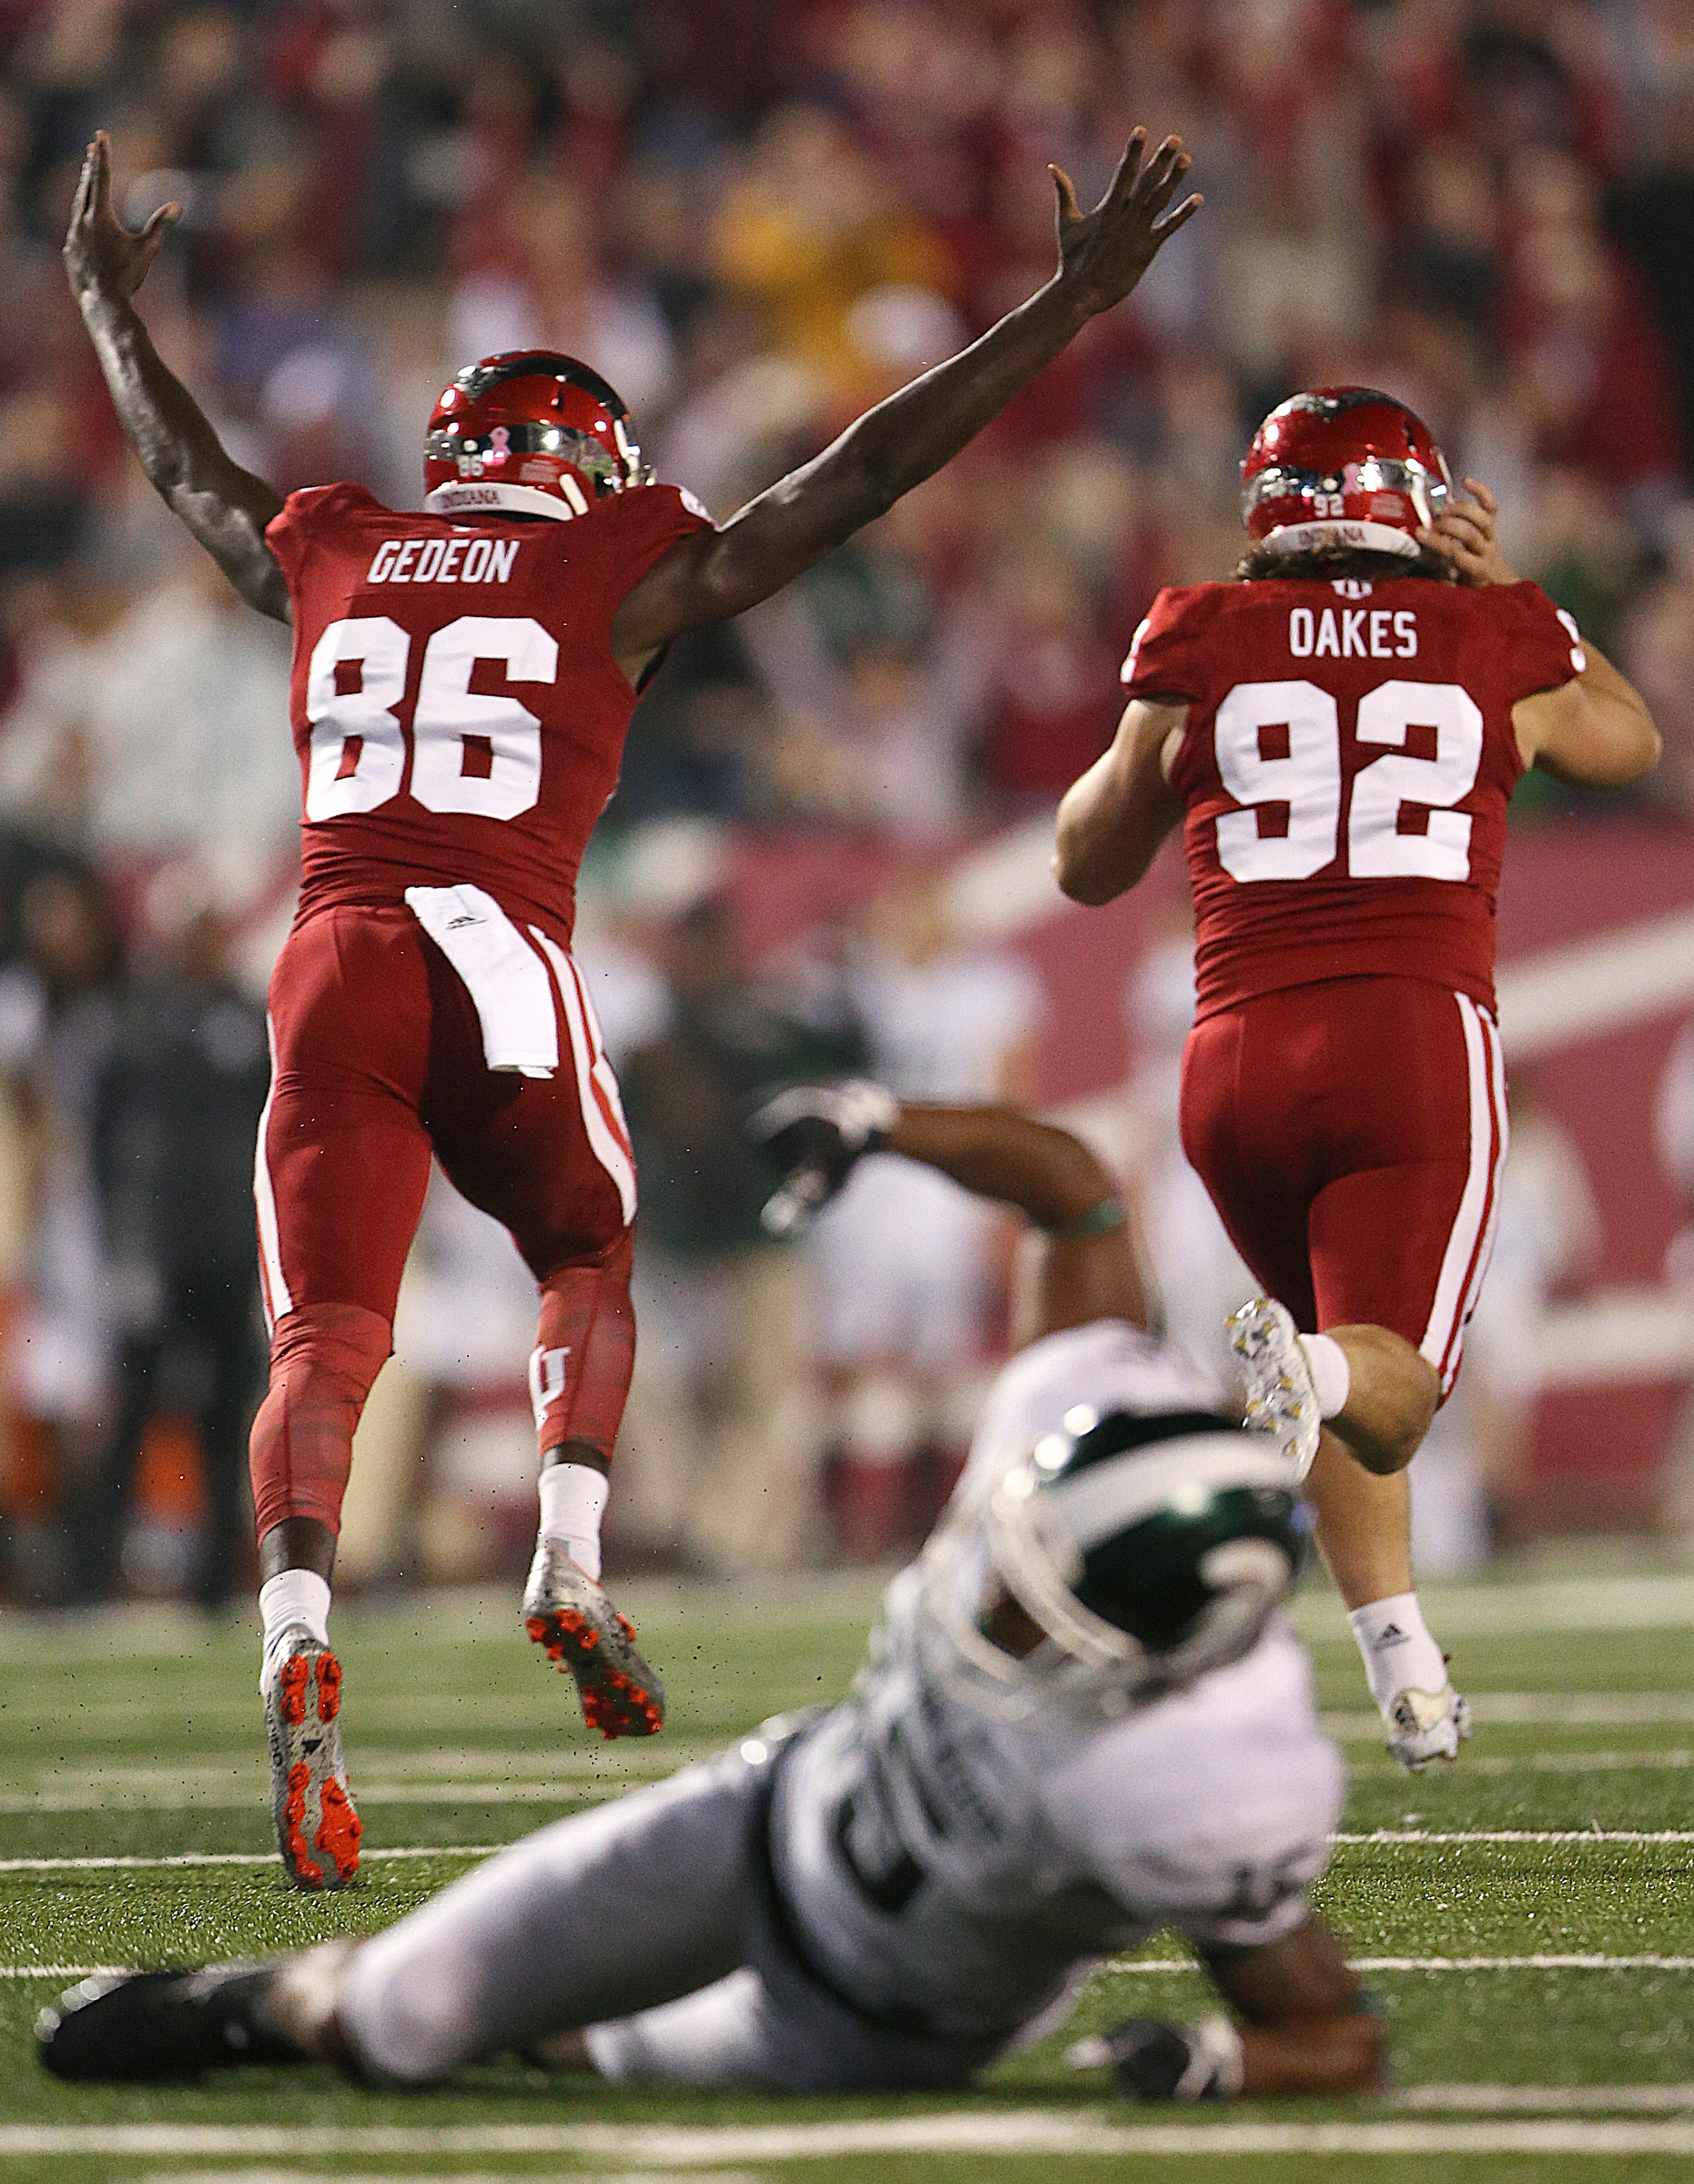 Indiana Hoosiers kicker Griffin Oakes (92) kicks a field goal to defeat Michigan State 24-21 in overtime, Bloomington, Ind., Saturday, October 1, 2016. Oakes and Indiana Hoosiers punter Joseph Gedeon (86) celebrate as Michigan State Spartans linebacker Andrew Dowell (5) pounds the field in the foreground.